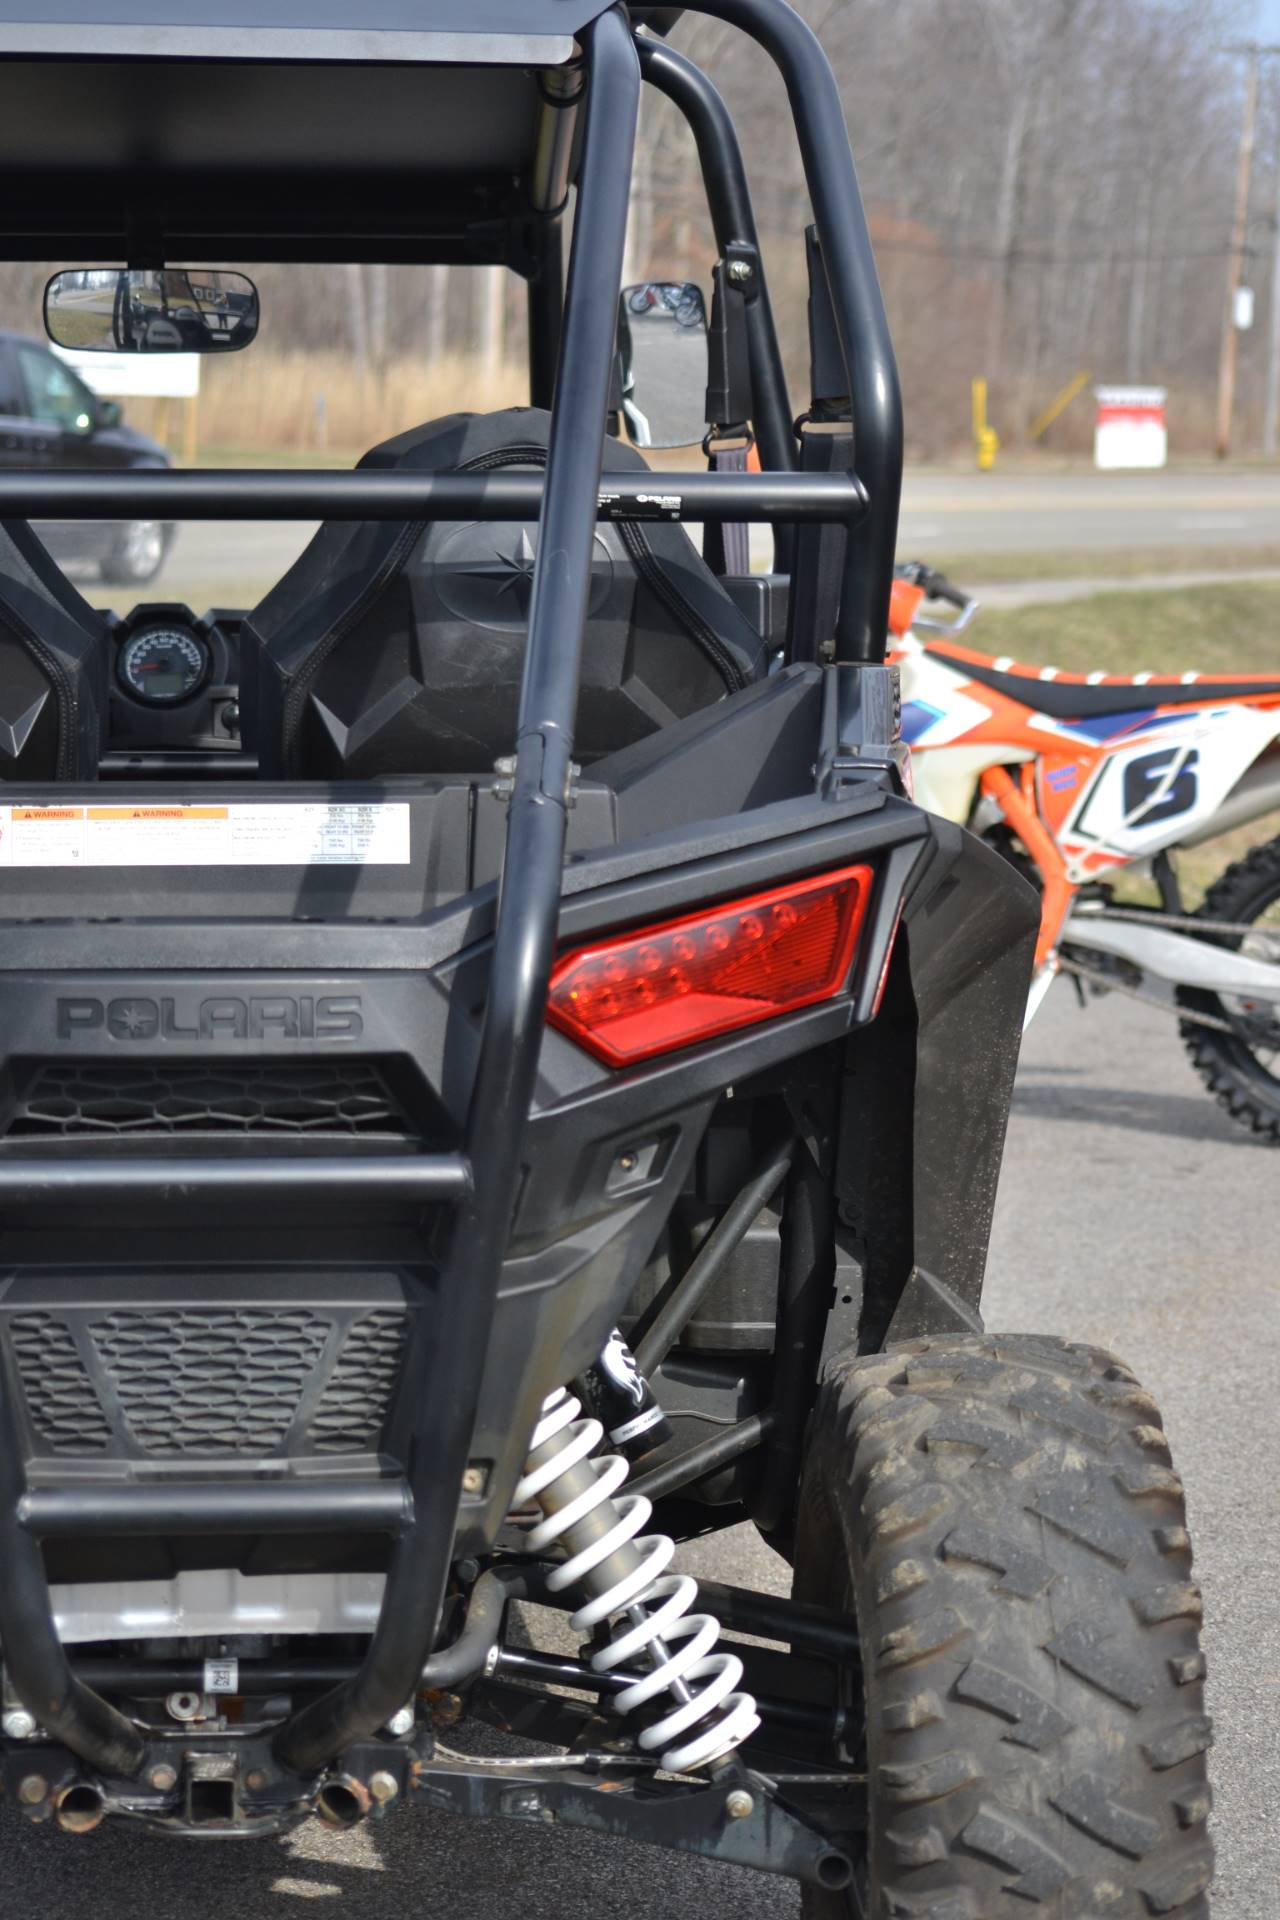 2018 Polaris 2018 POLARIS RZR S4 900 (ELECTRIC POWER STEERING) in Depew, New York - Photo 2